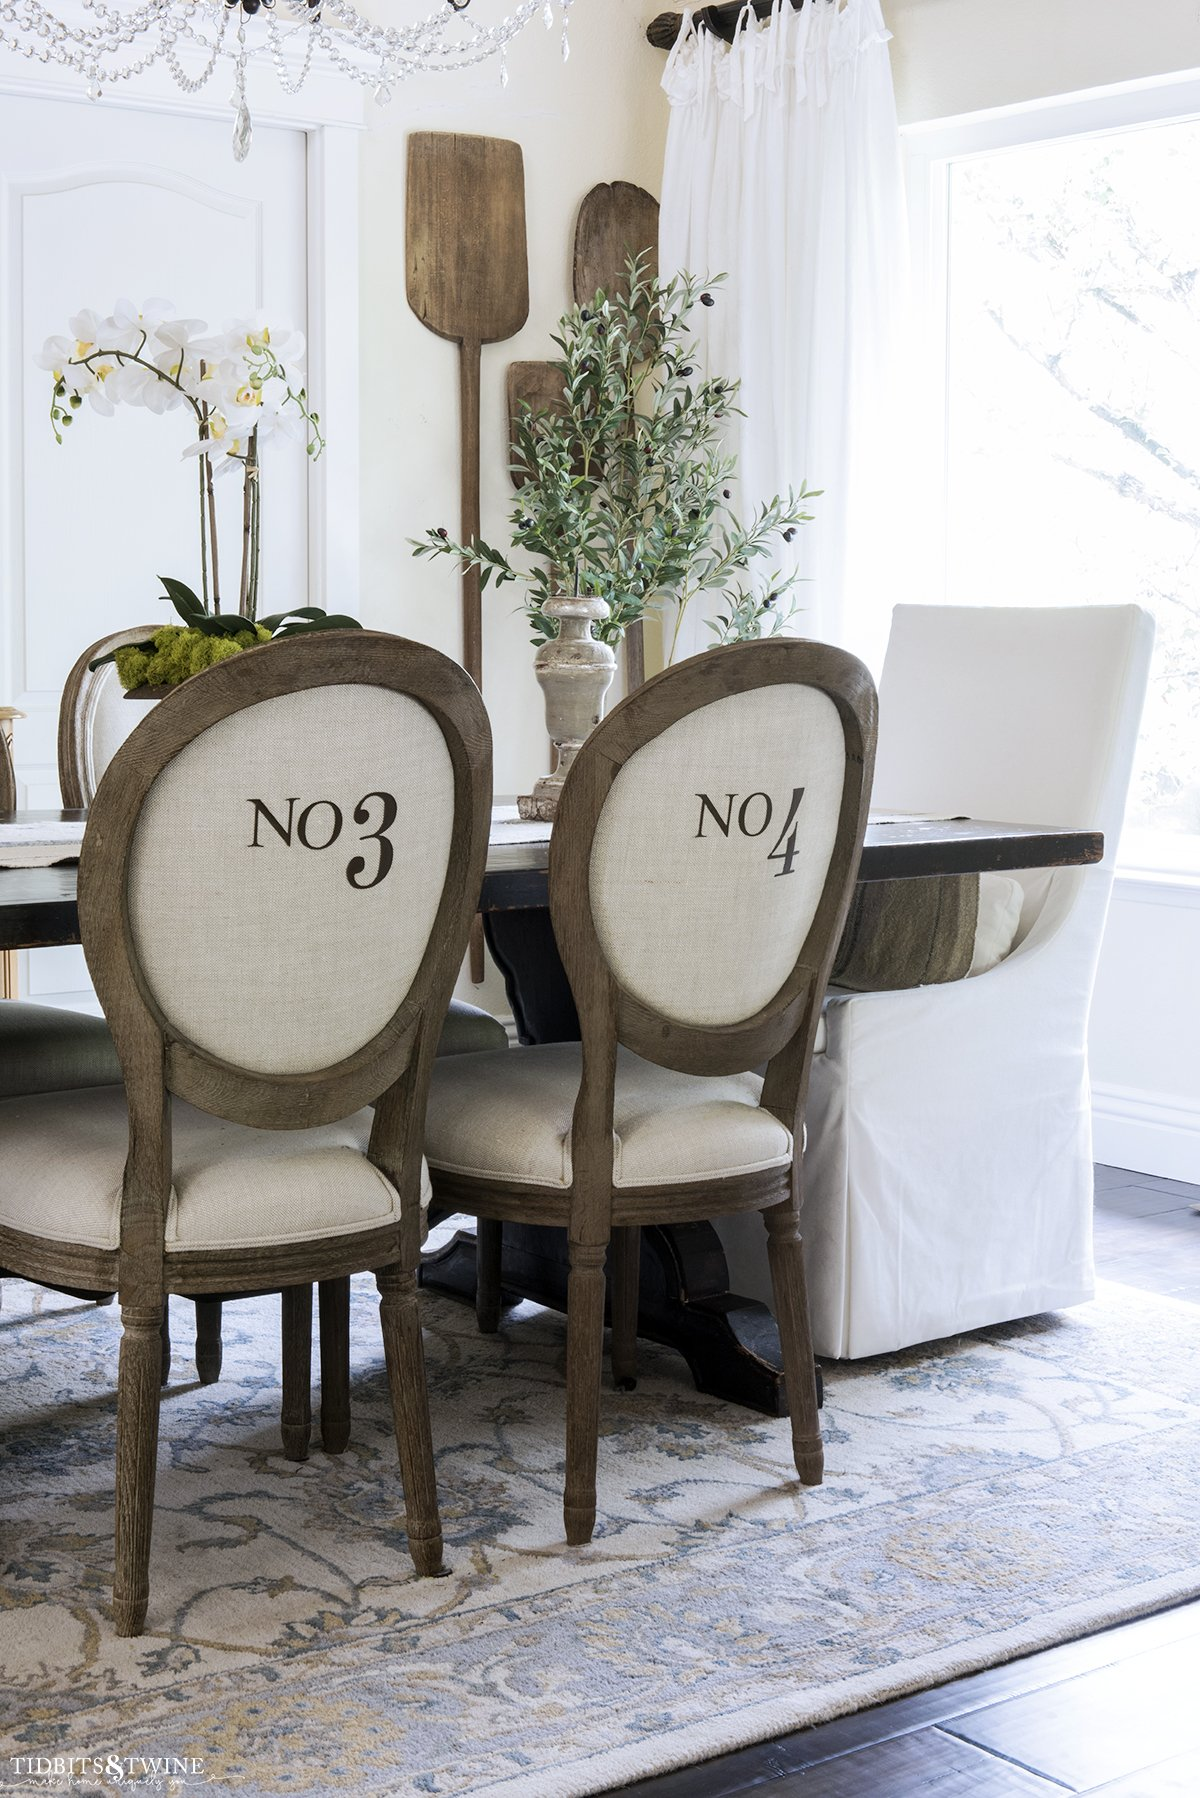 Dining room trestle table with french chairs with numbers on the back and white velvet head chair